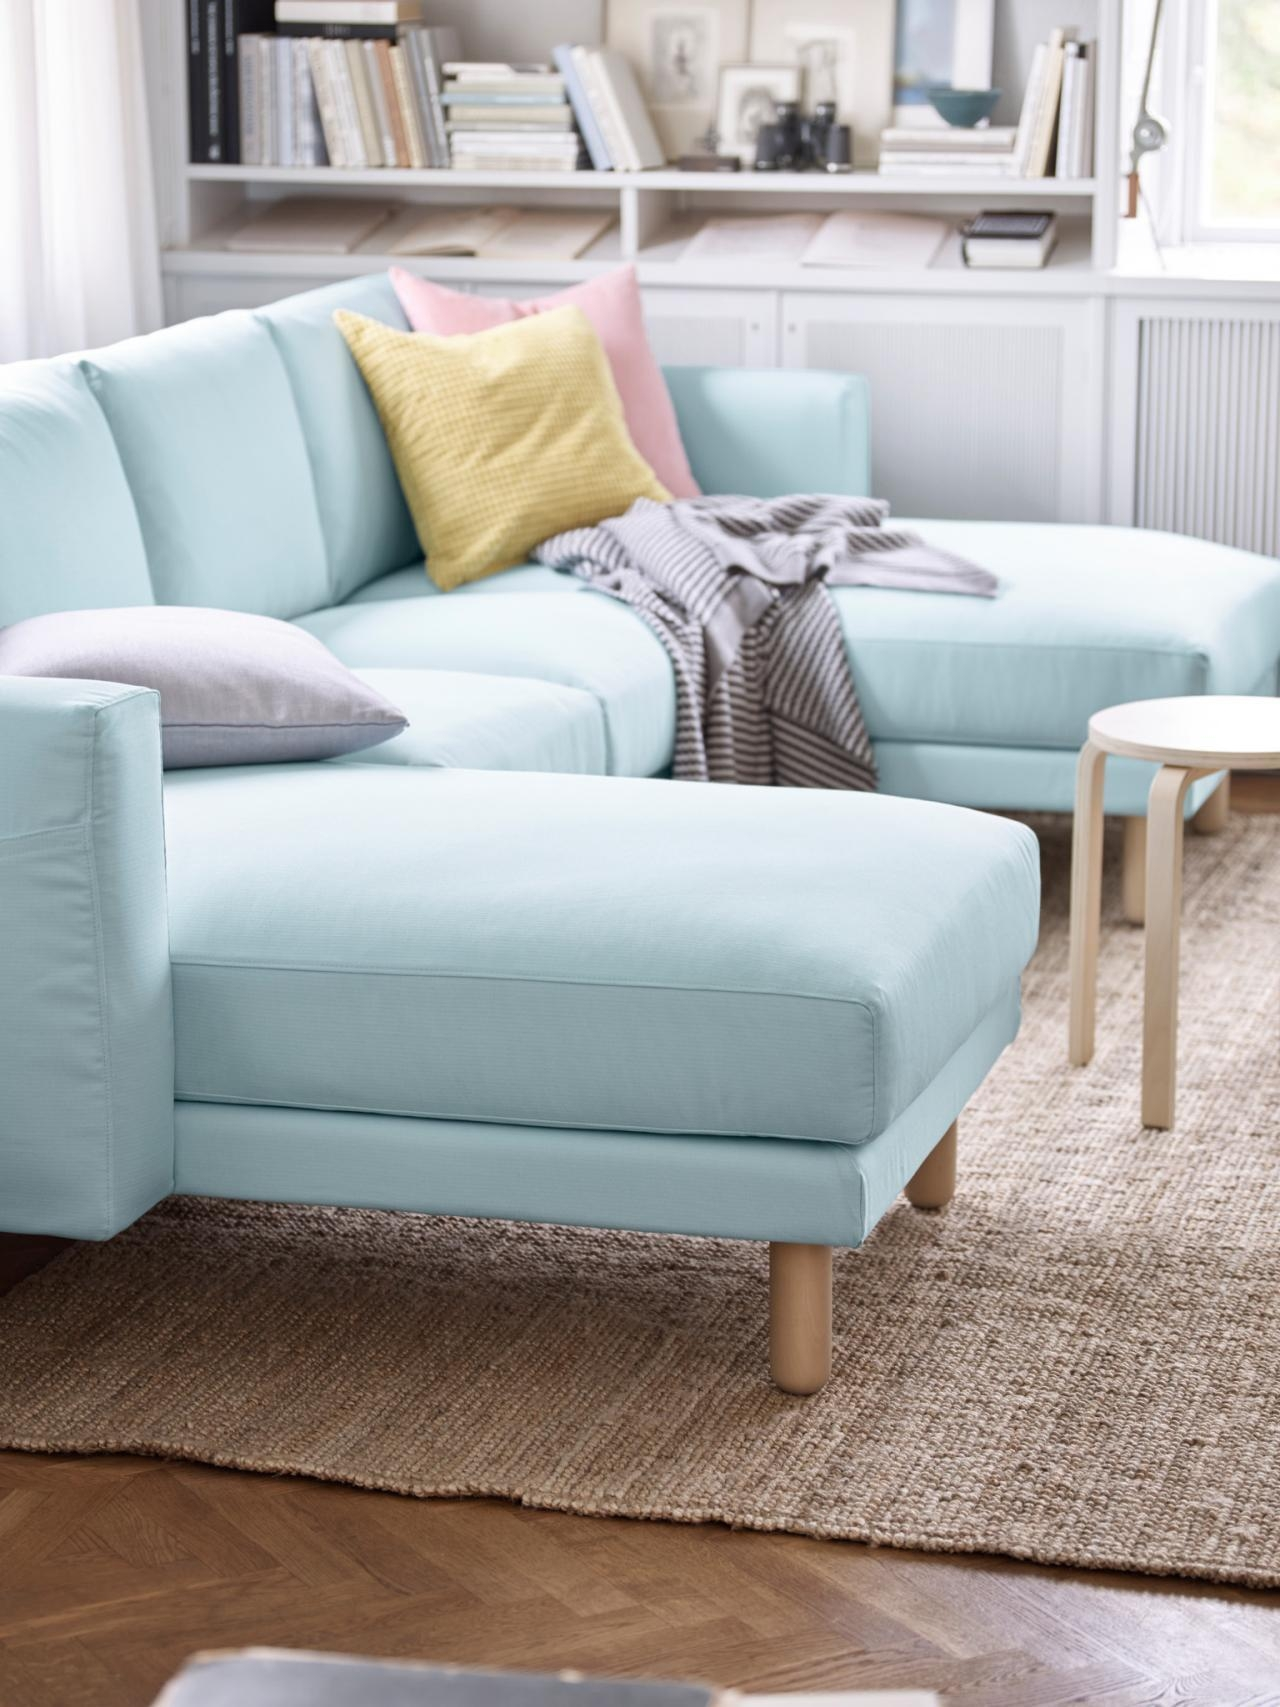 5 Apartment Sized Sofas That Are Lifesavers | Hgtv's Decorating Within Inexpensive Sectional Sofas For Small Spaces (Image 1 of 20)